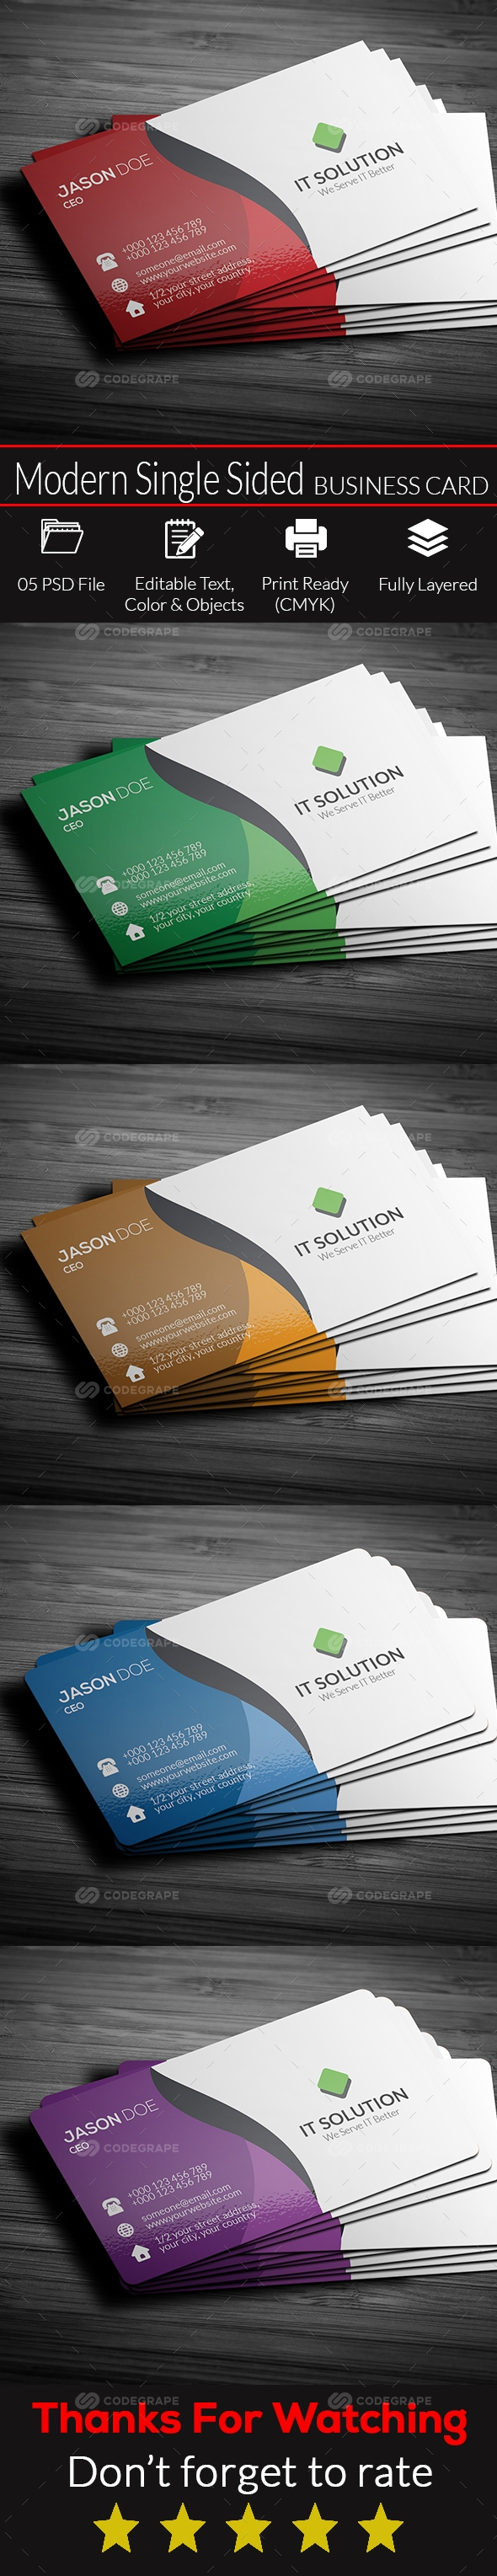 Modern Front Sided Business Card